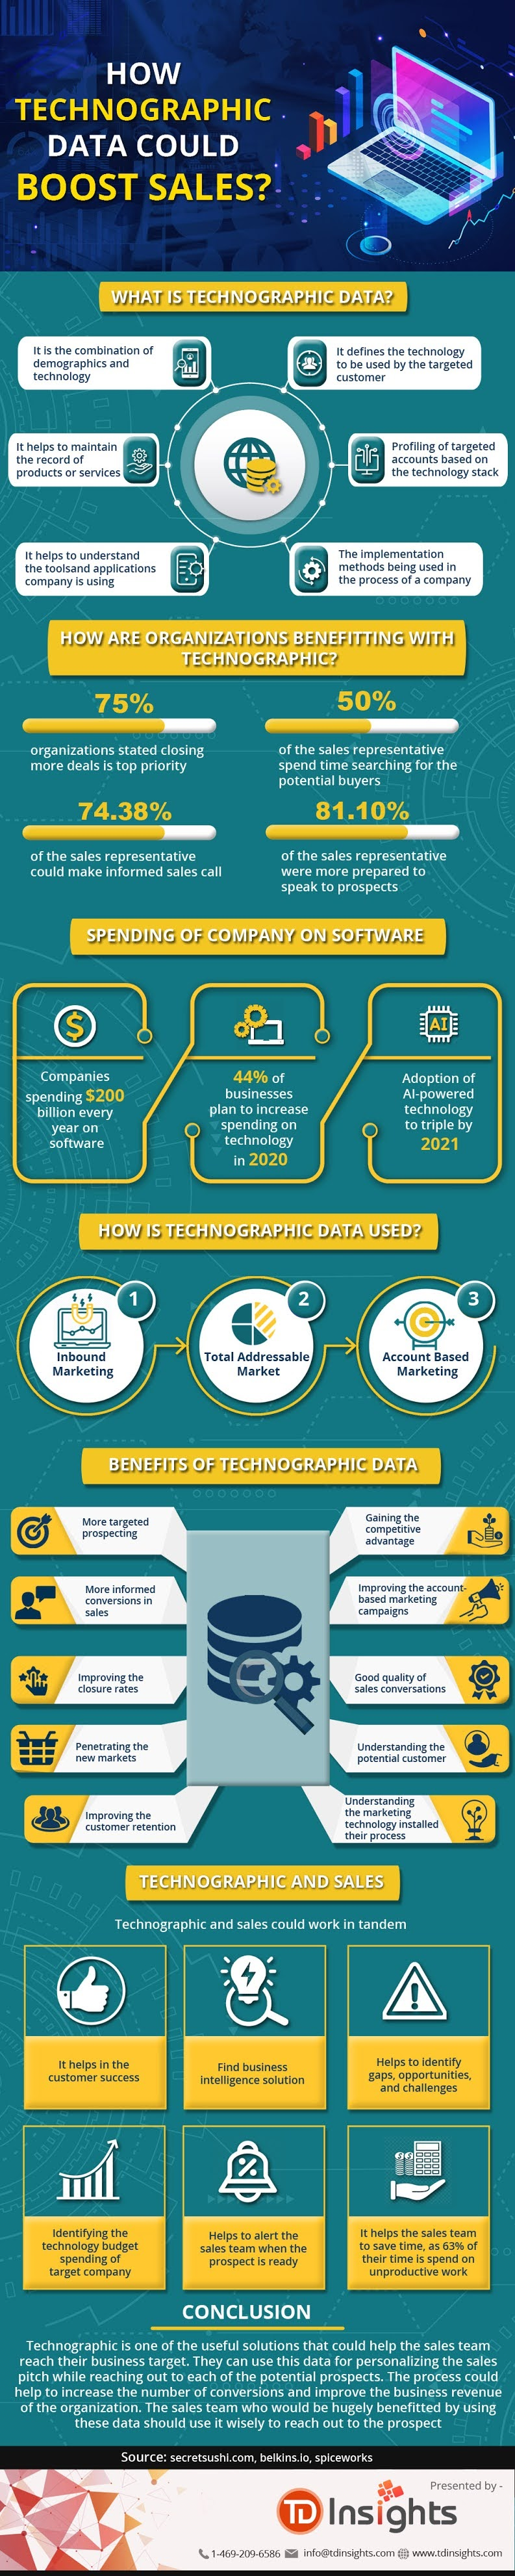 How Technographic Data Could Boost Sales? #Infographic